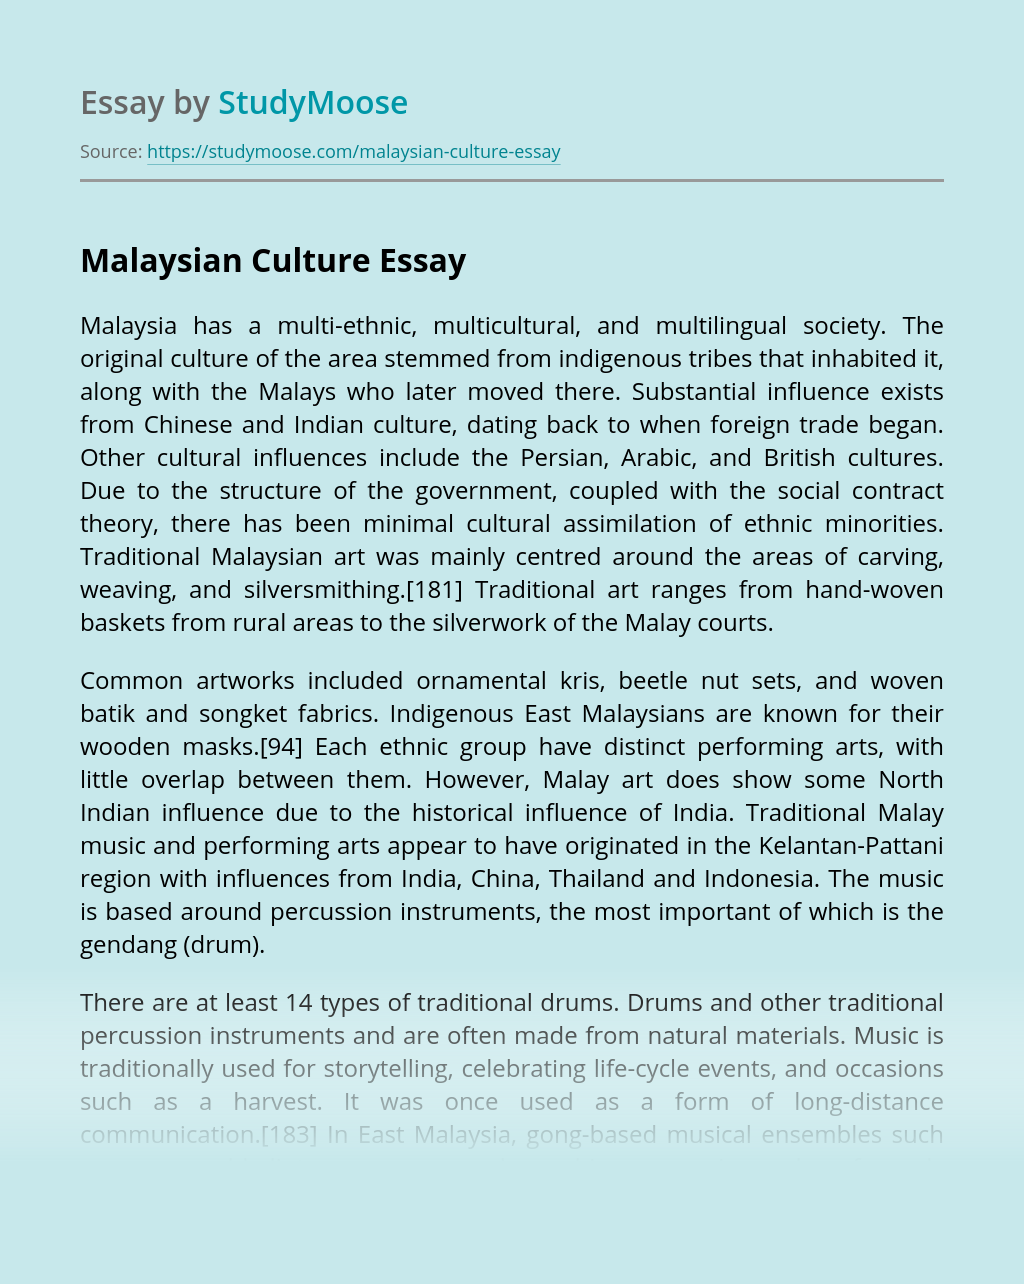 11 Things You Should Know About Malaysian Culture